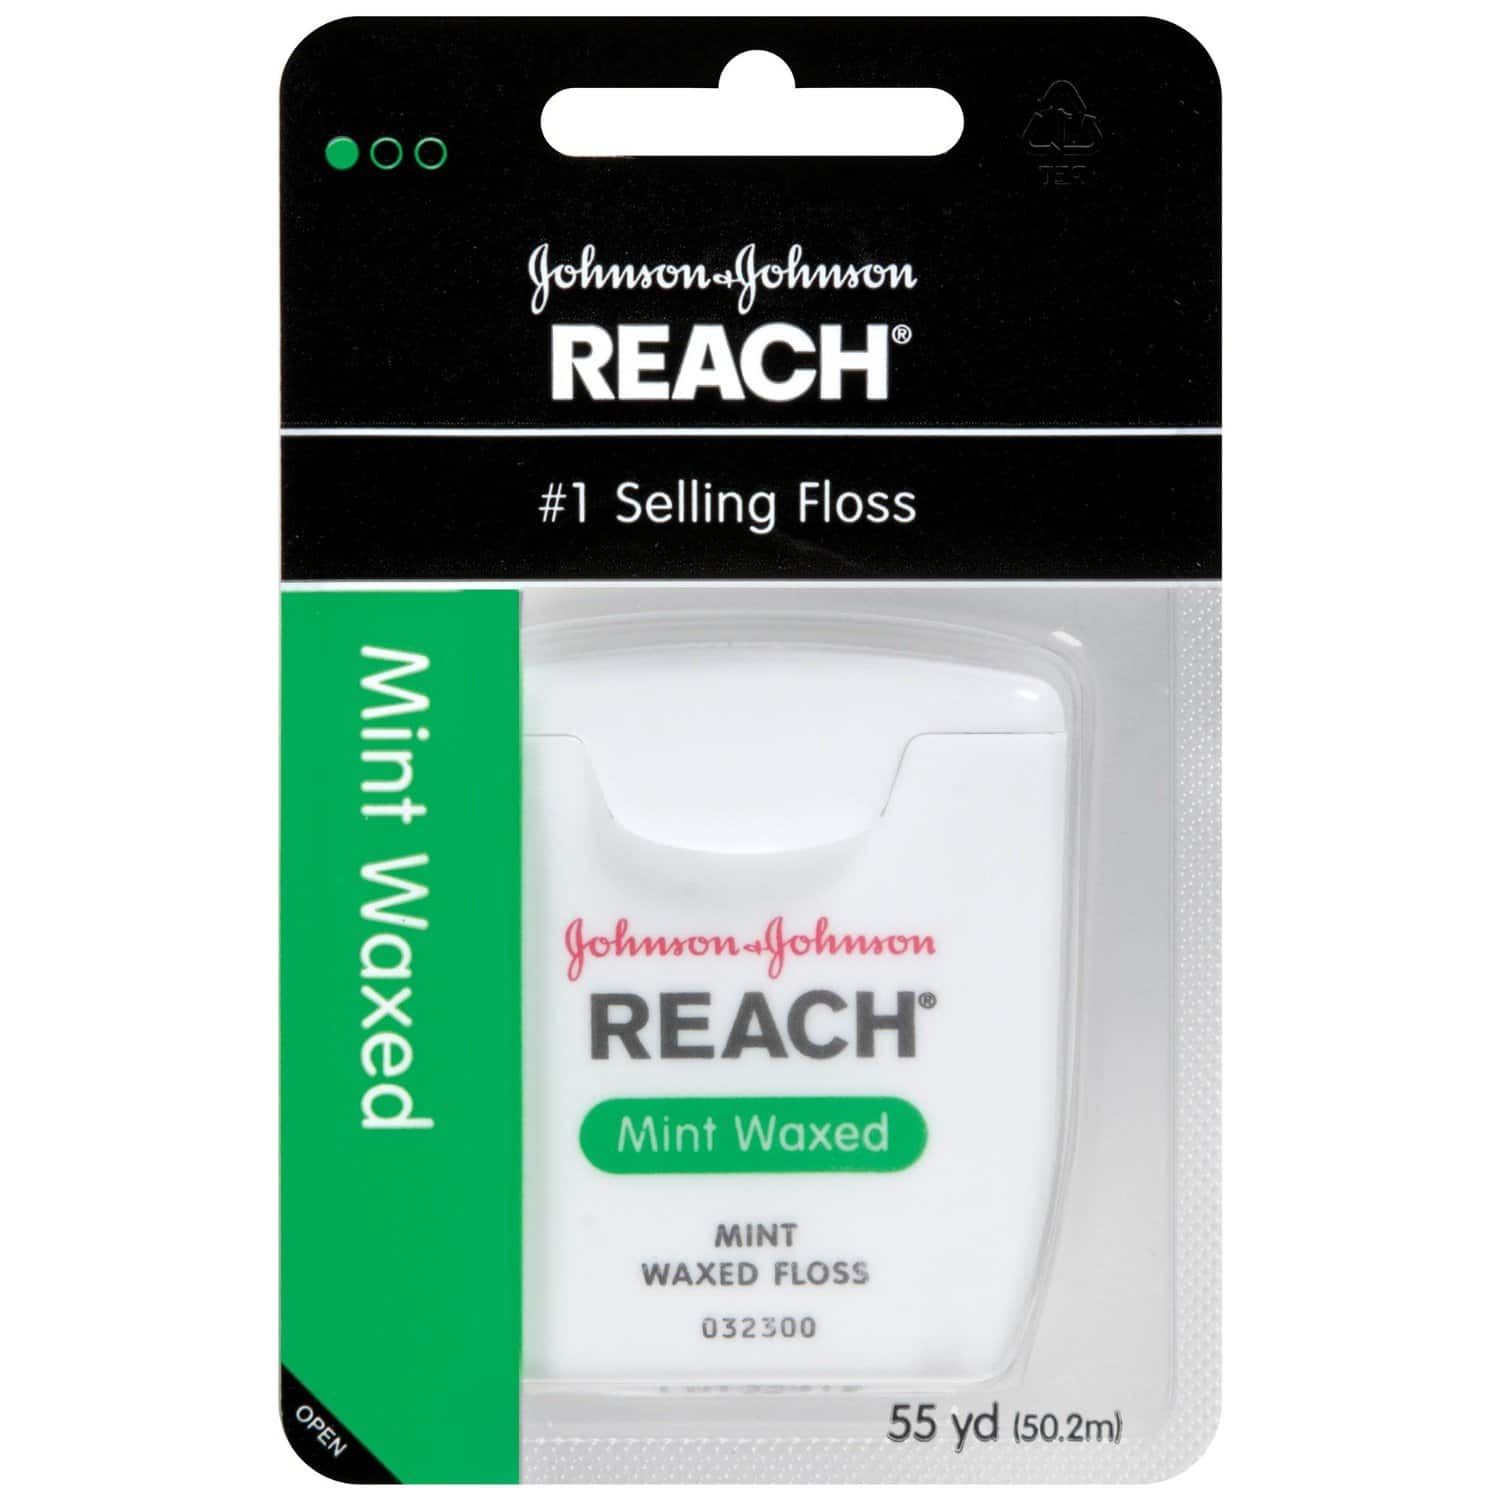 Reach Mint Waxed Dental Floss, 55 Yards (Pack of 6) - $5.70 w/S&S, (As Low As - $5.10)